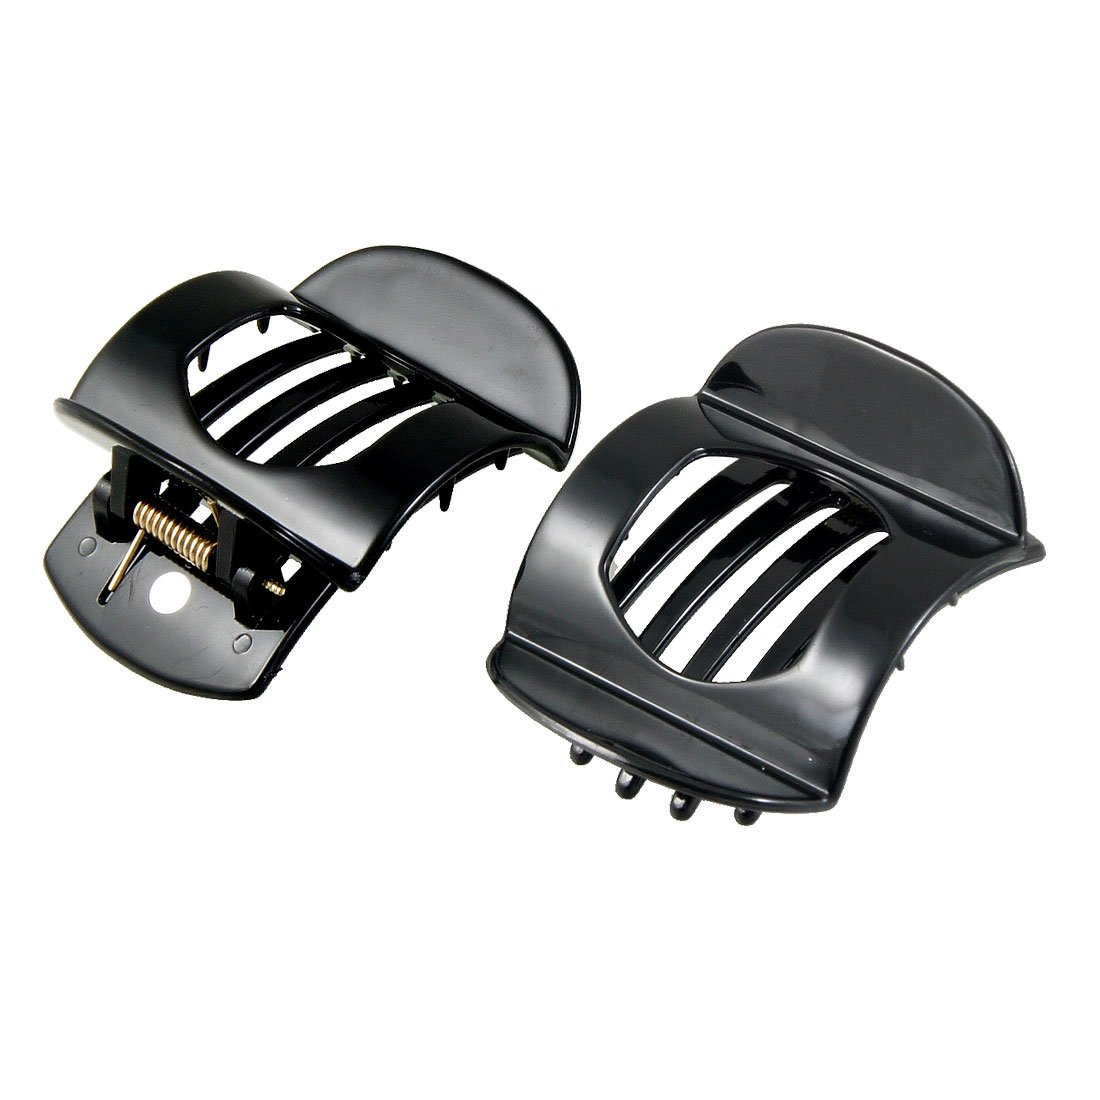 uxcell® Black Plastic Barrette Hairpin Clamp Hair Claw Small Clip 2 Pcs for Ladies